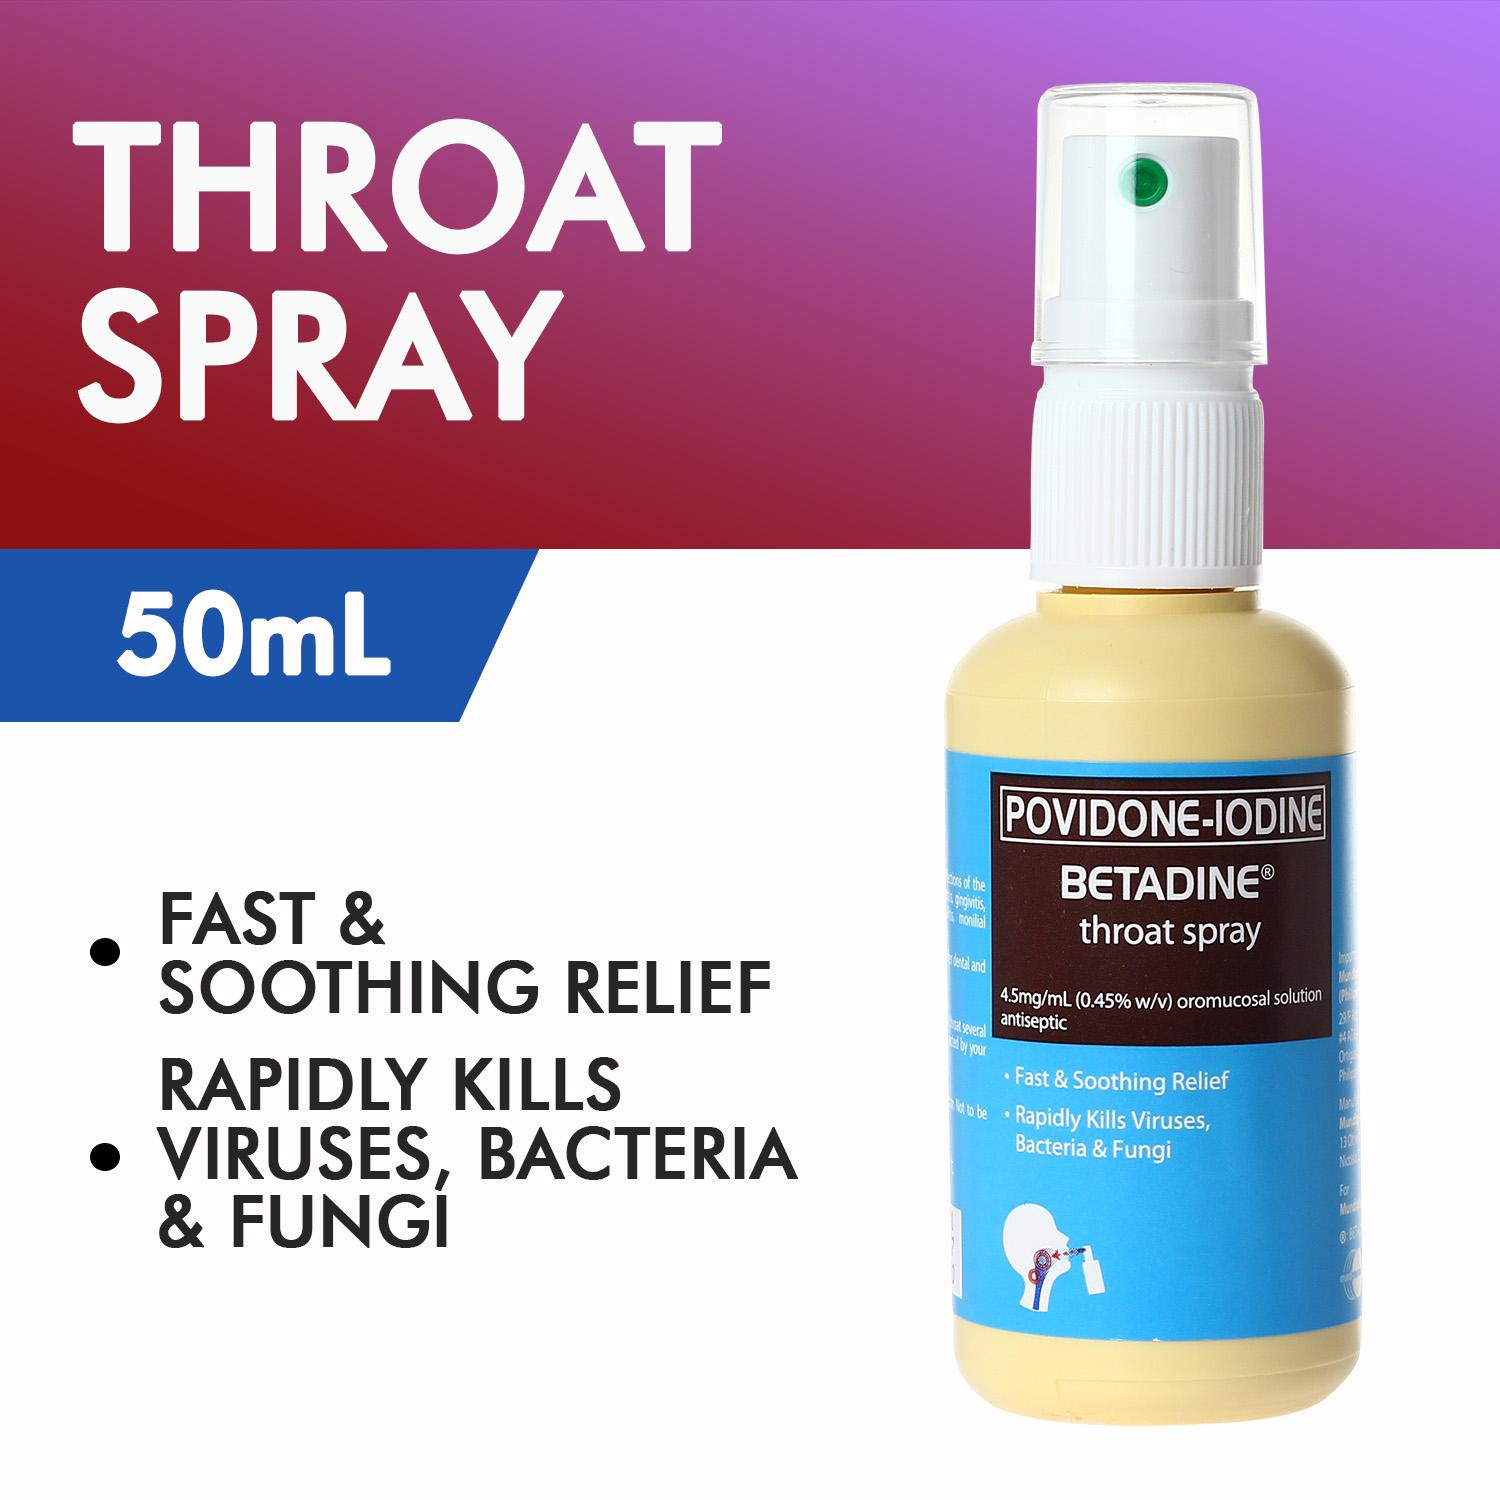 Povidone-Iodine (BETADINE®) Throat Spray 50mL